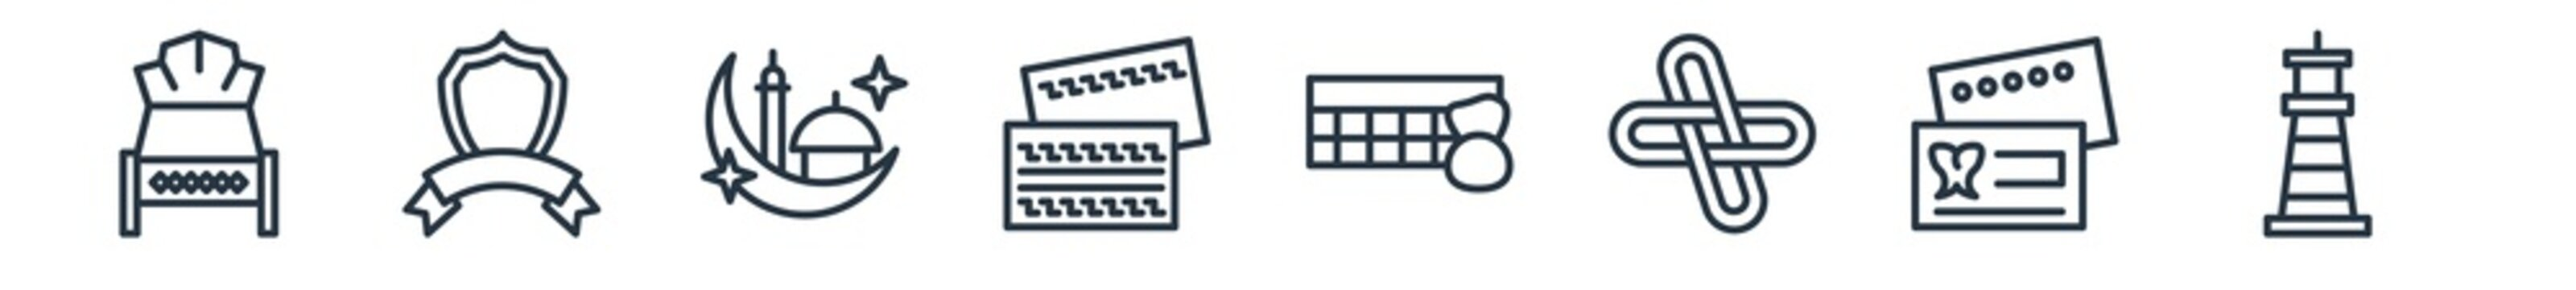 linear set of other outline icons. line vector icons such as hotel bed, blazon, mosque moon and star, government business card, loto, smeaton's tower vector illustration.